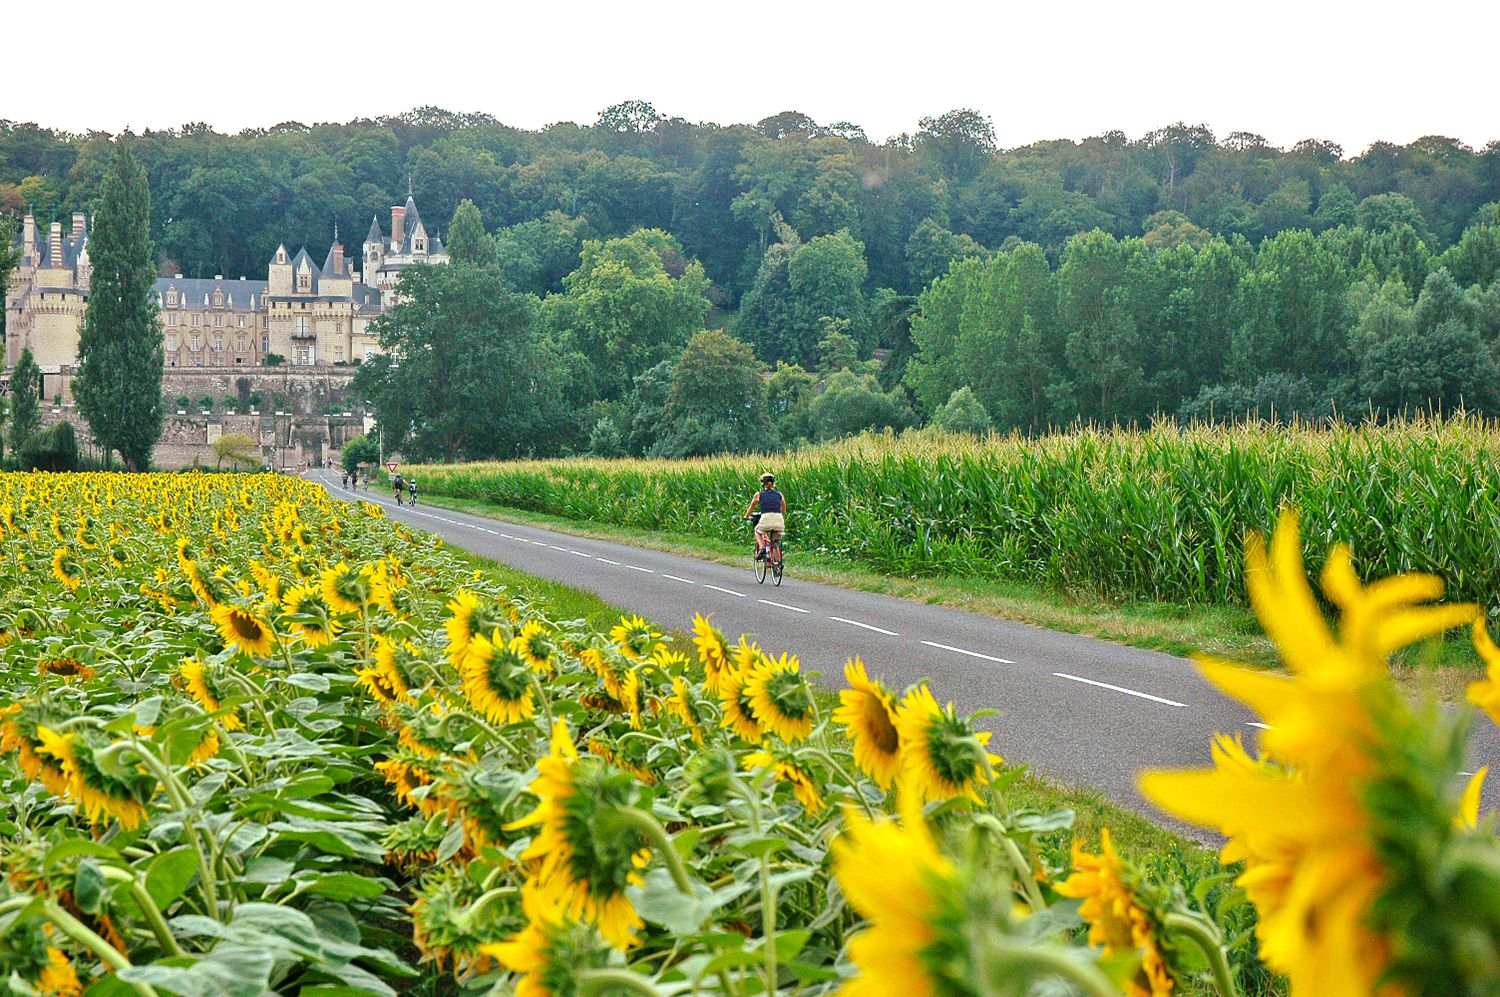 cycling through sunflowers towards a chateau